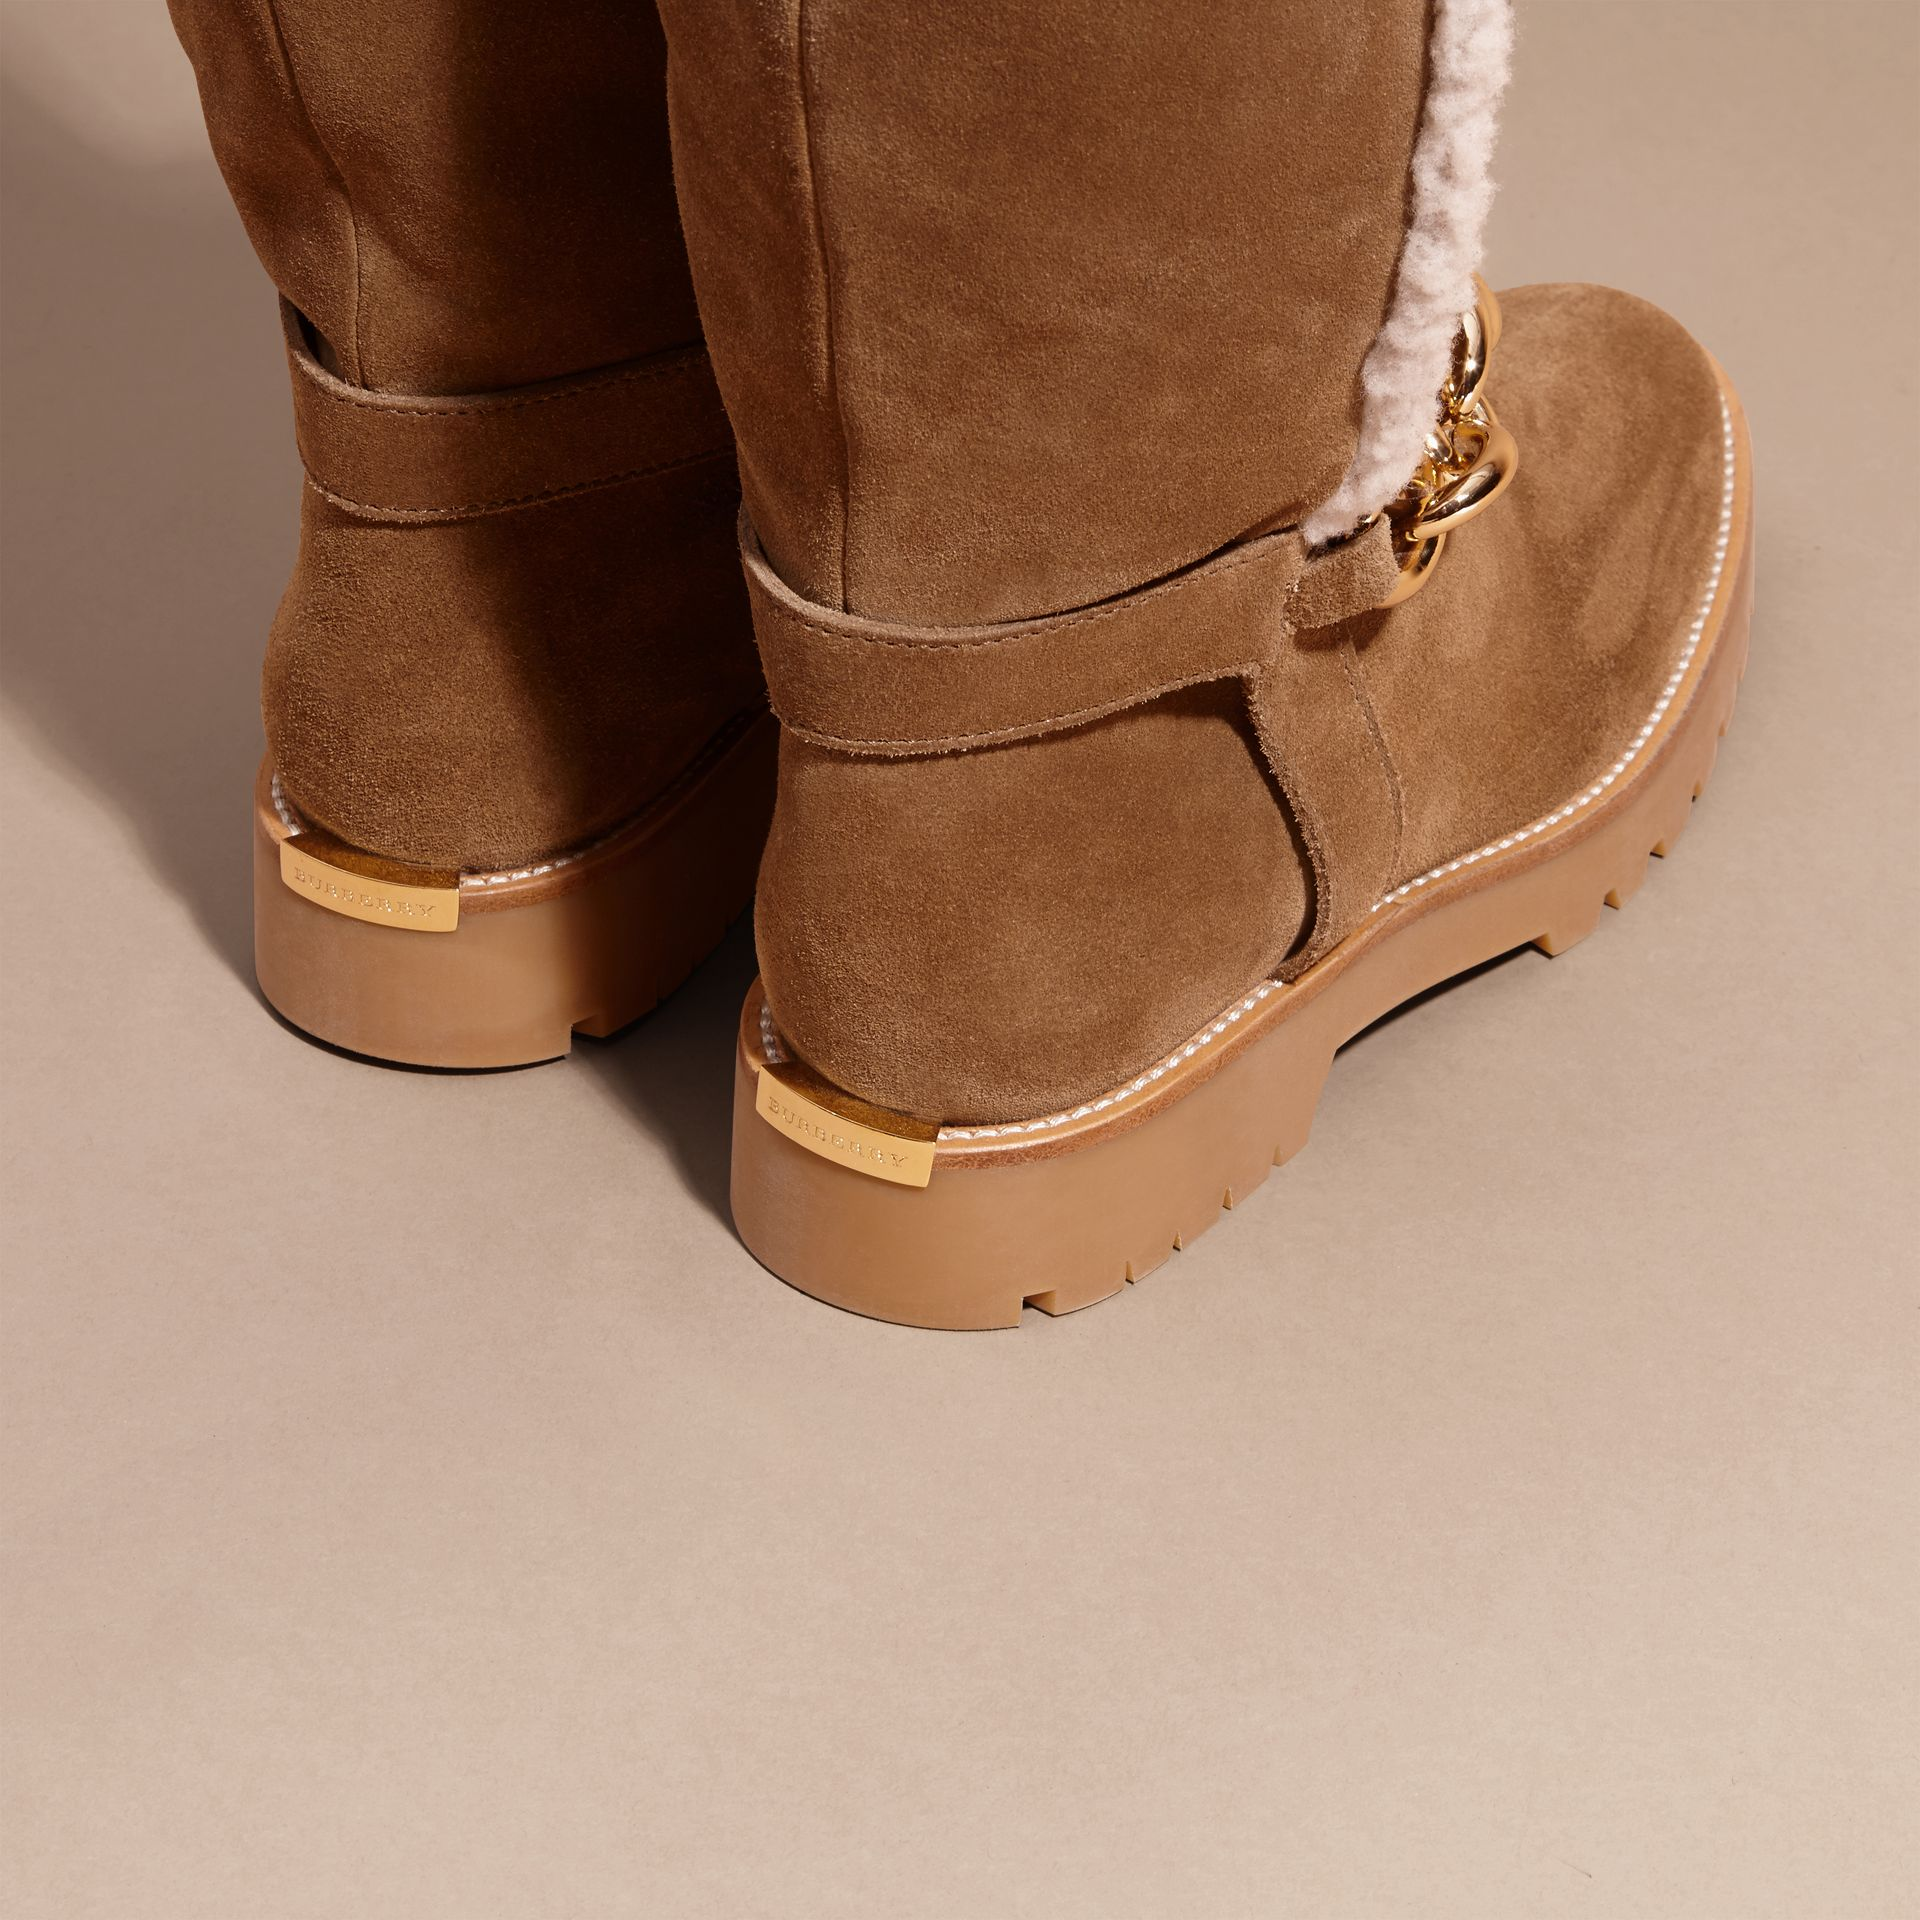 Chain Detail Shearling and Suede Boots - gallery image 4